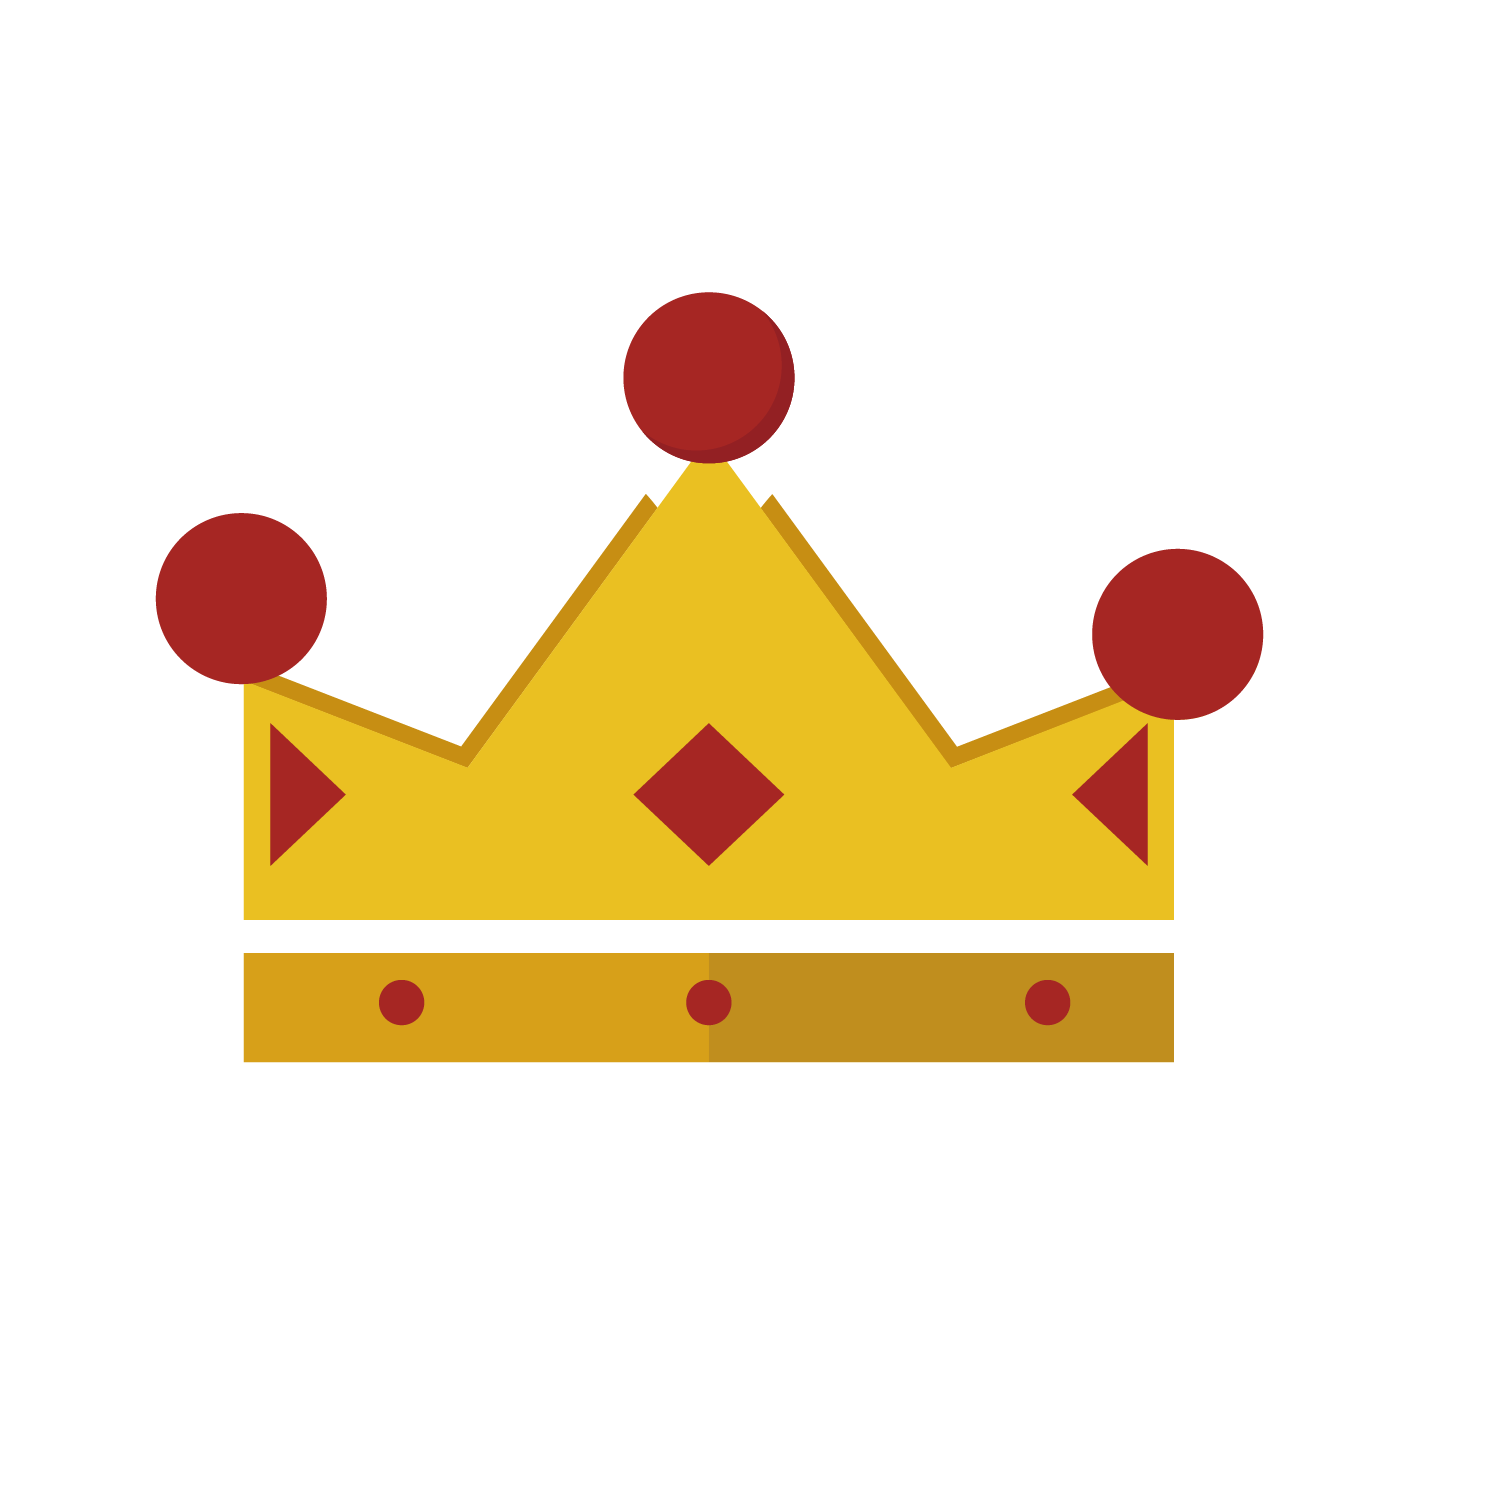 Burger king crown clipart clip free stock Crown Coroa Vermelha Red Clip art - Red Diamond Crown 1500*1500 ... clip free stock